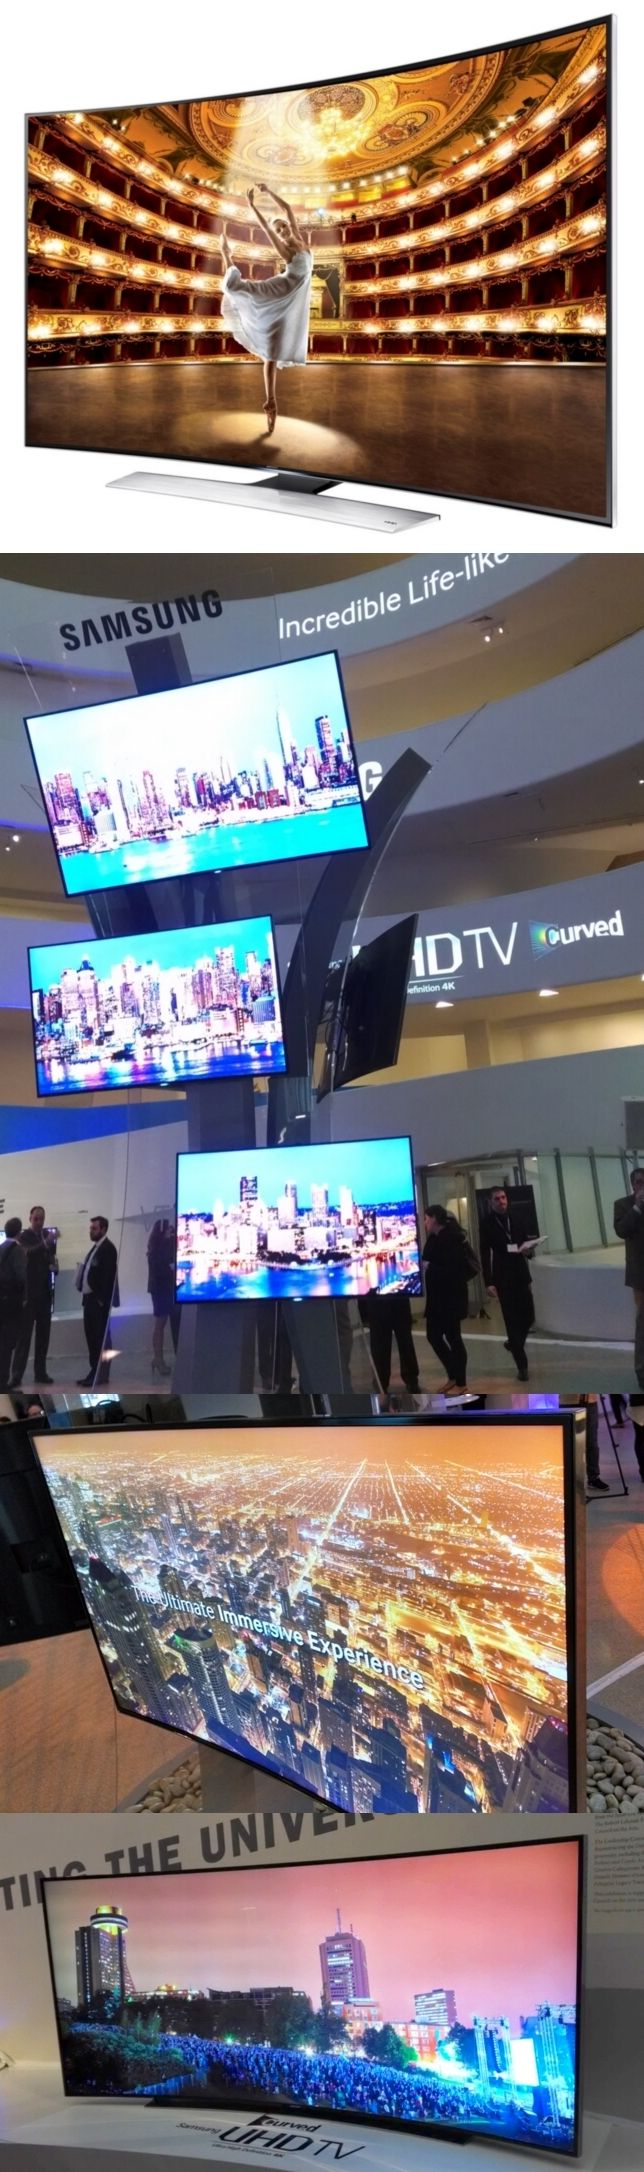 Samsung used the curvy confines of New York's Guggenheim Museum to launch its new curved UHD (ultra-high definition) TVs. The 55-inch ($4,000) and 65-inch ($5,000) Samsung HU9000 series curved UHDTVs go on sale this month while an $8,000 78-inch model will debut in May. A yet-unpriced 105-inch curved UHD TV is planned for later this year. All of the curved UHD TVs can upscale old videos into the sharper UHD format and all have smartphone-like quad-core processors for the many apps they can…